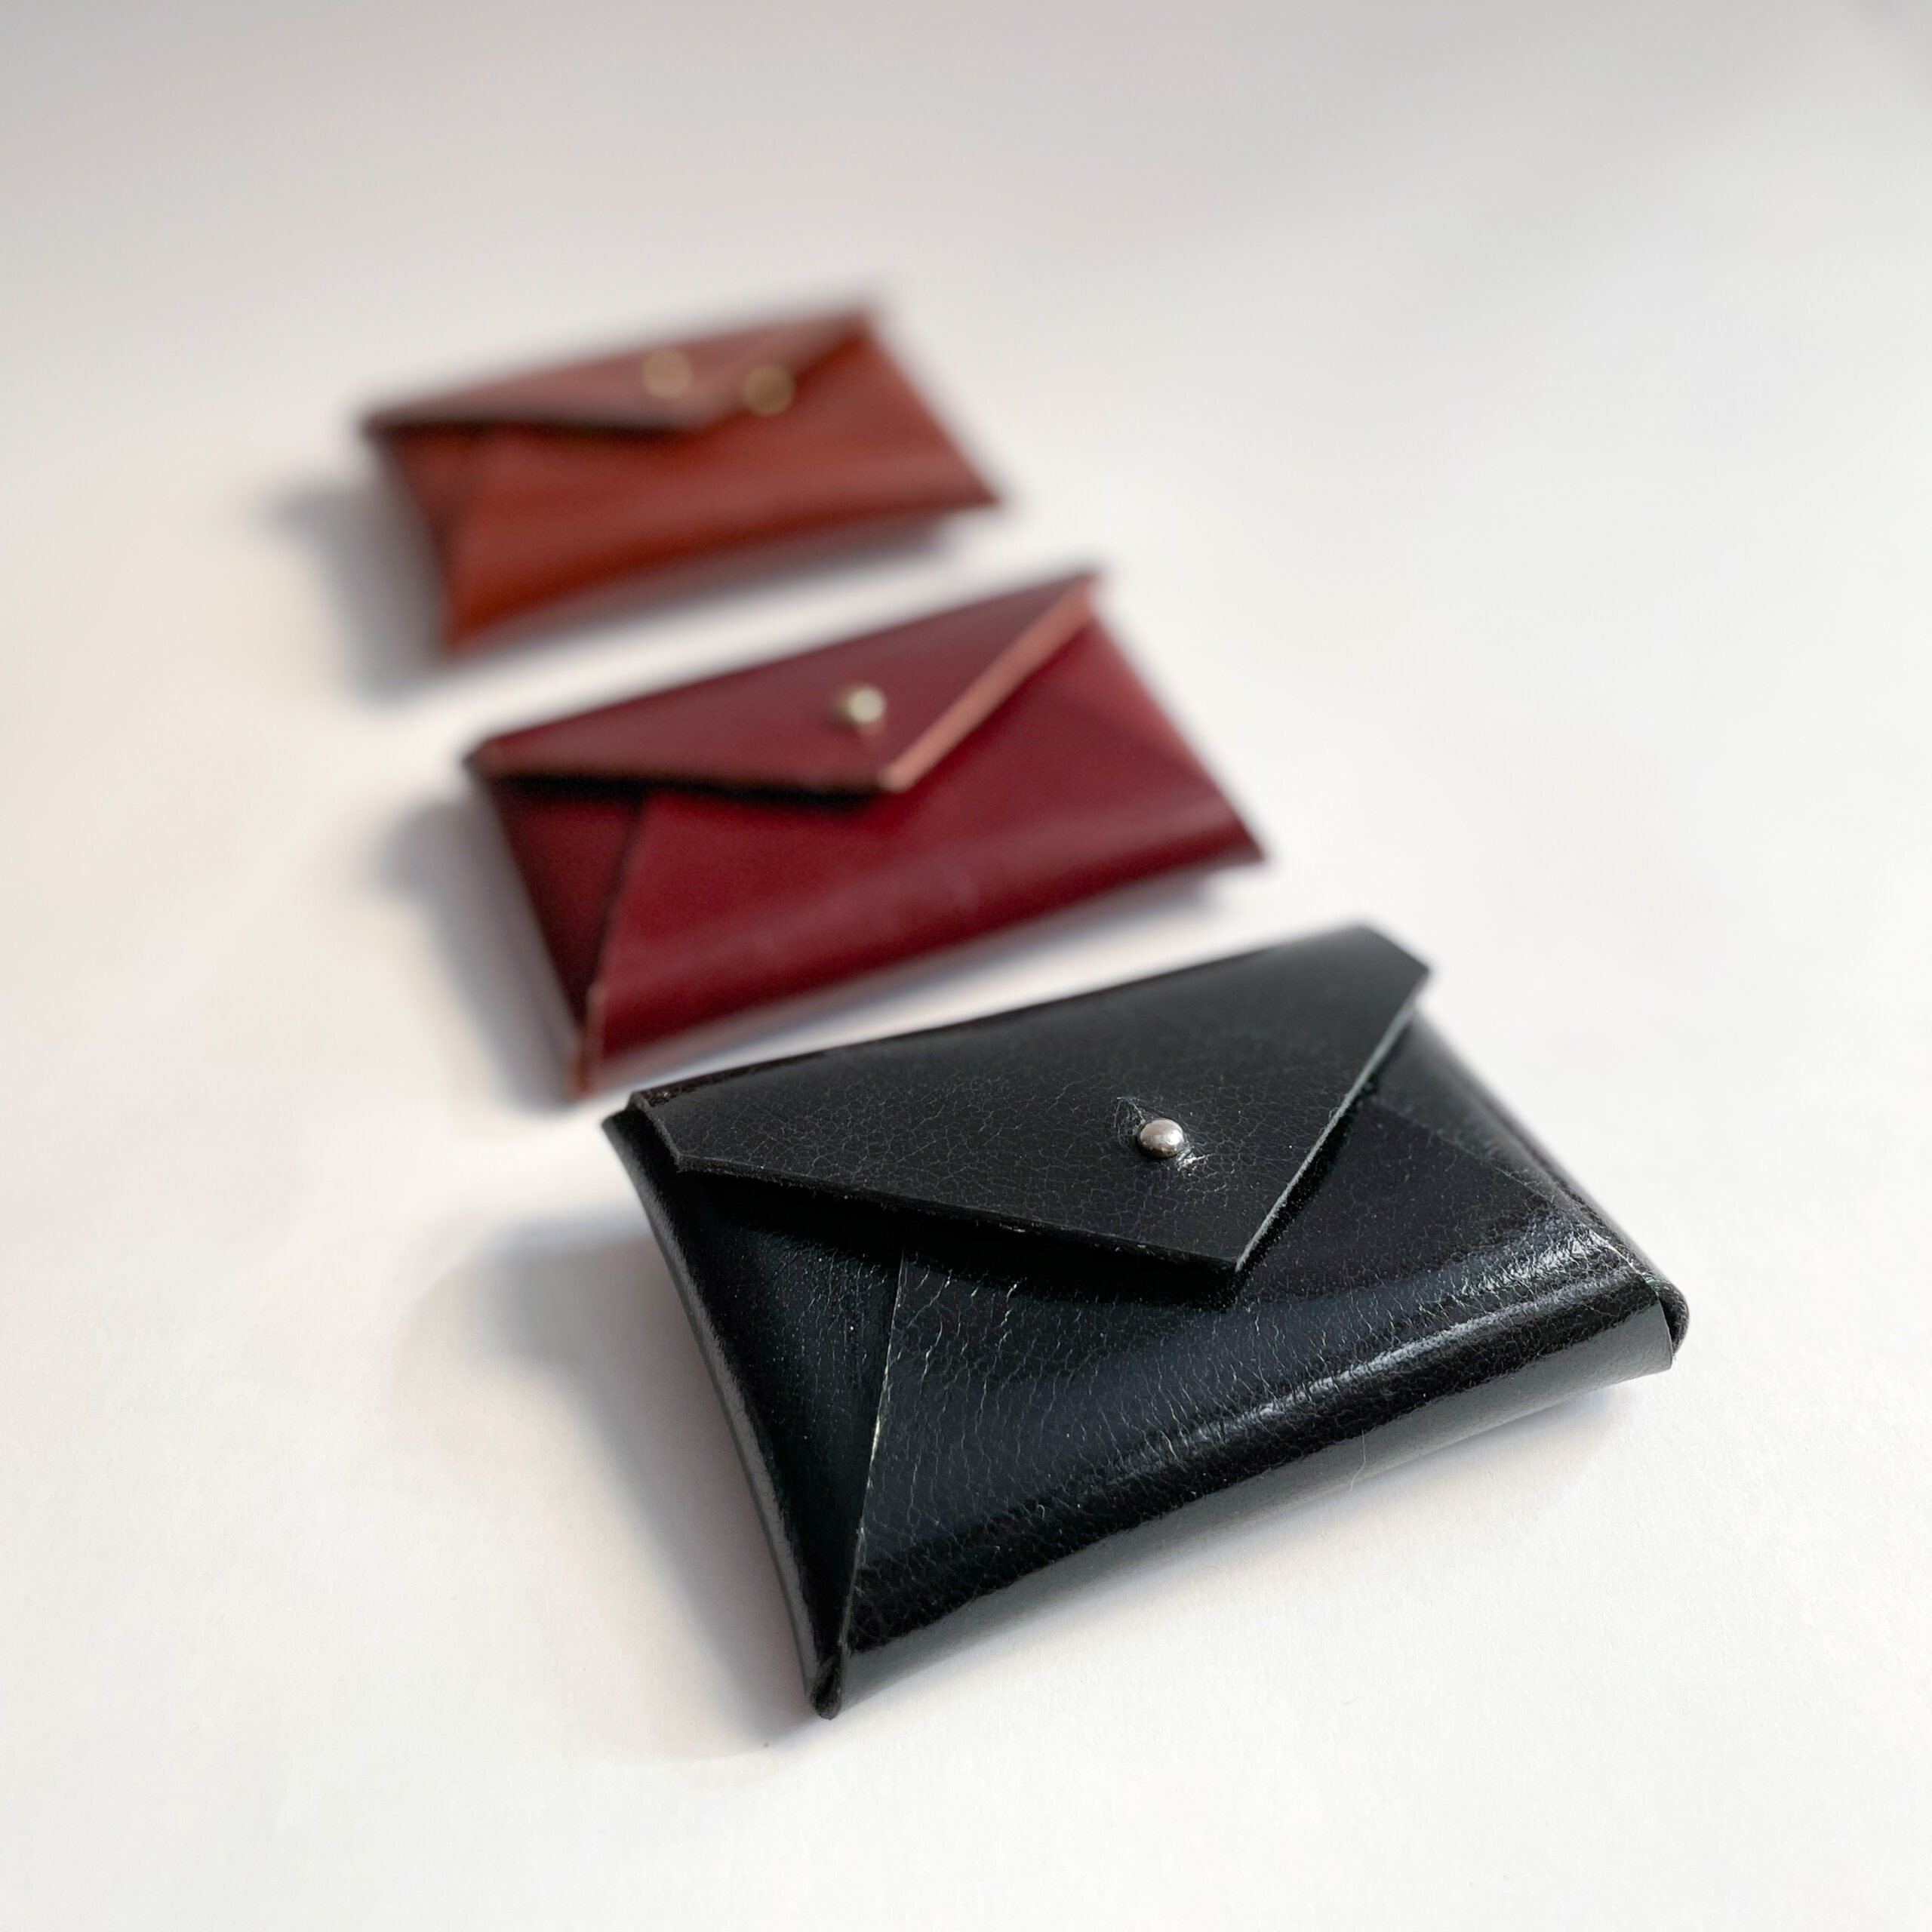 Three leather card cases, with the black on in front, in focus